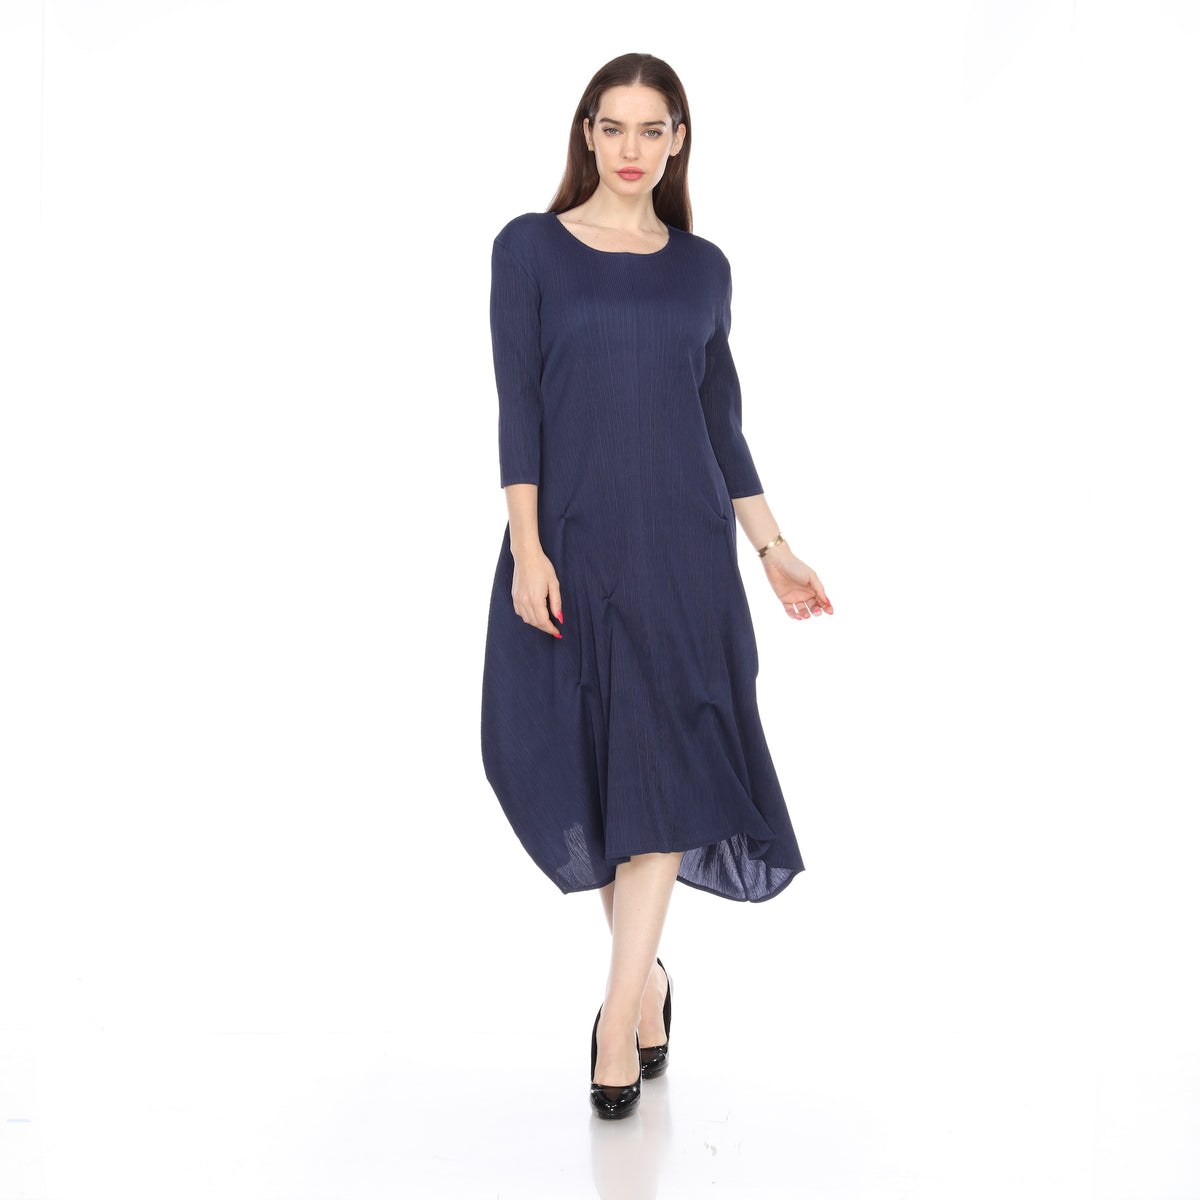 3/4 Sleeve Skirt Stitched Dress - Navy